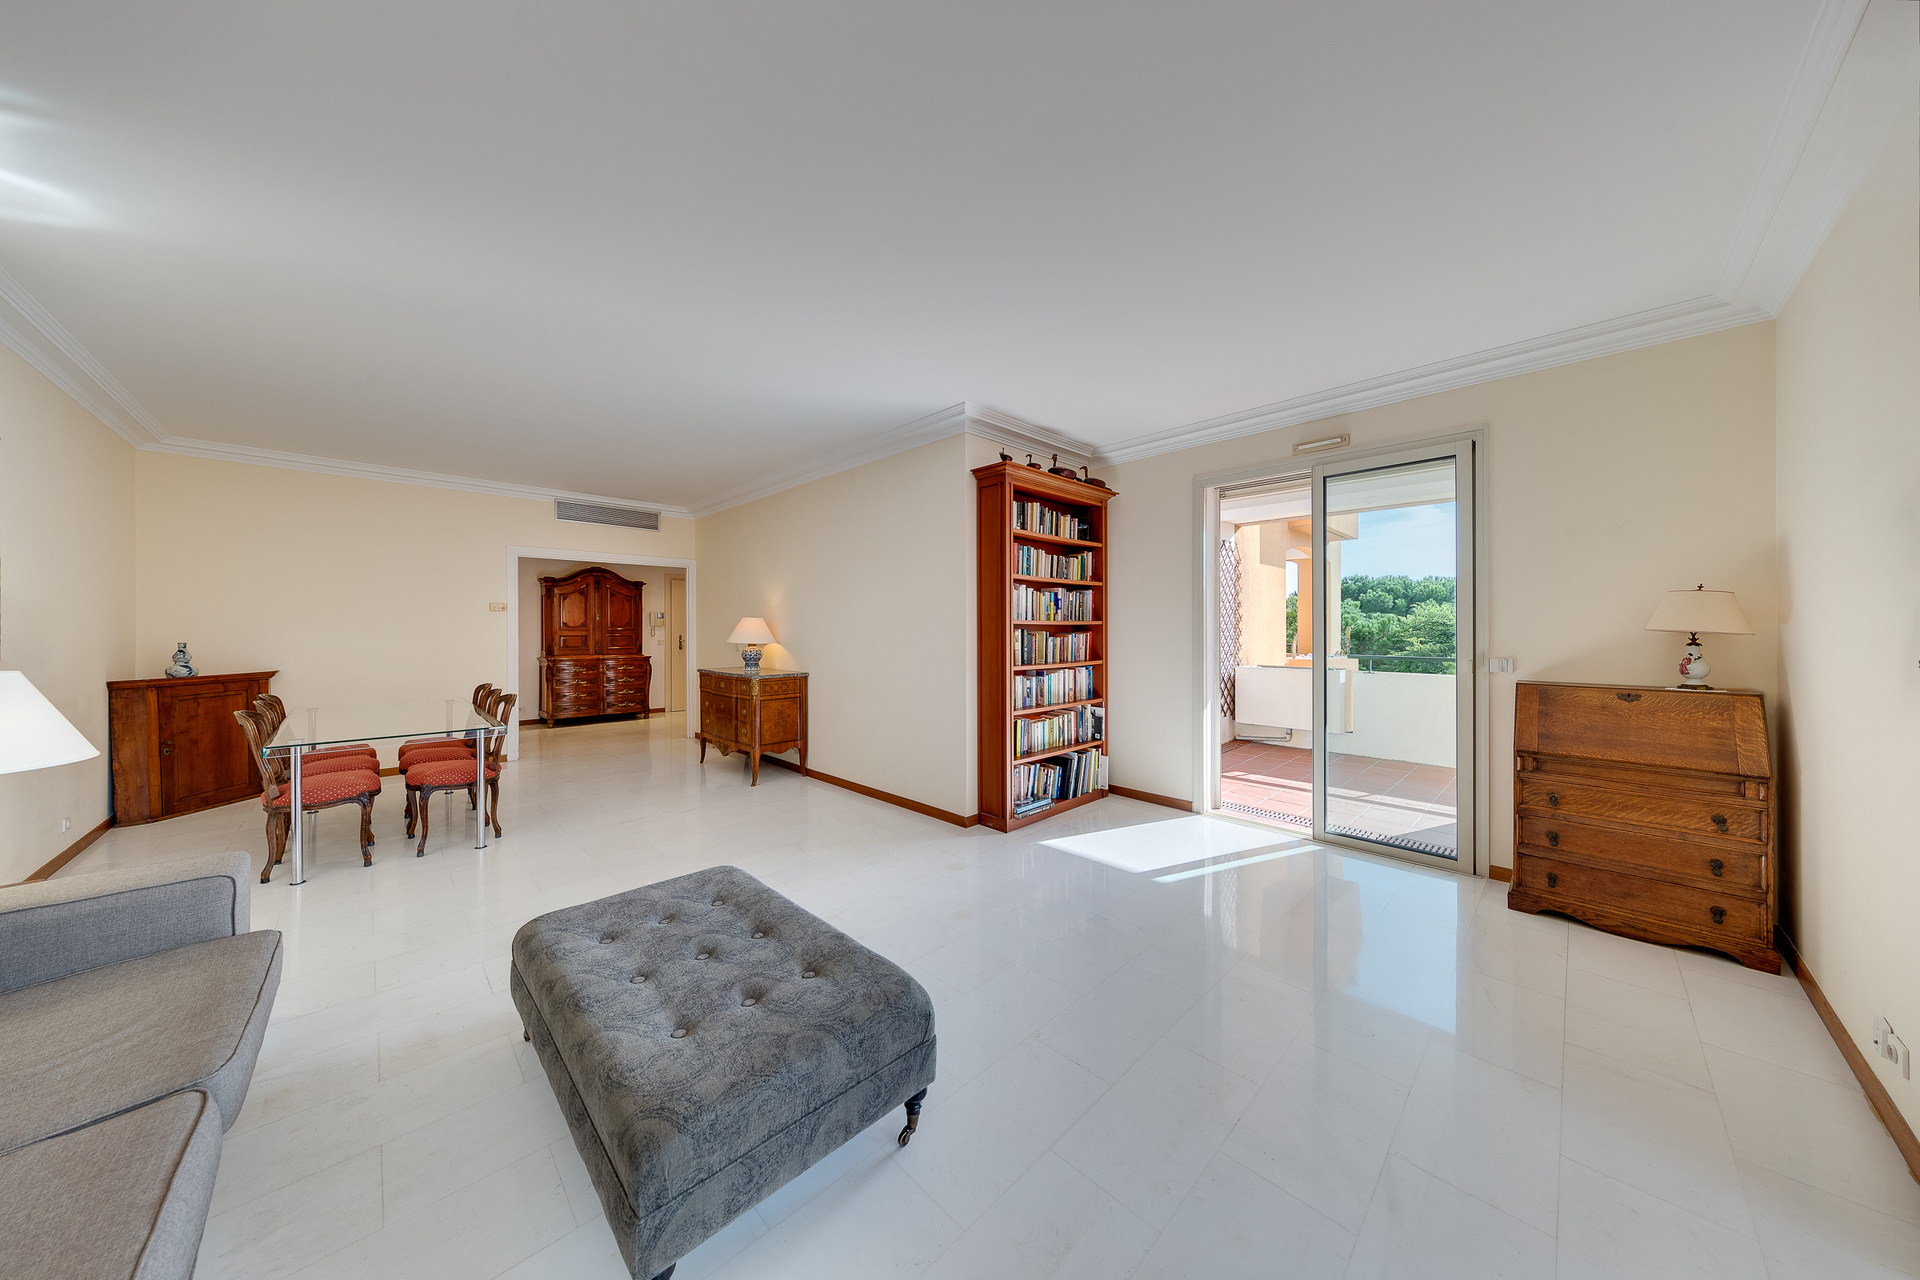 Monte Marina spacious 2 bedroom apartment for sale, possibility to add a 3rd bedroom - Uffici in vendita a MonteCarlo